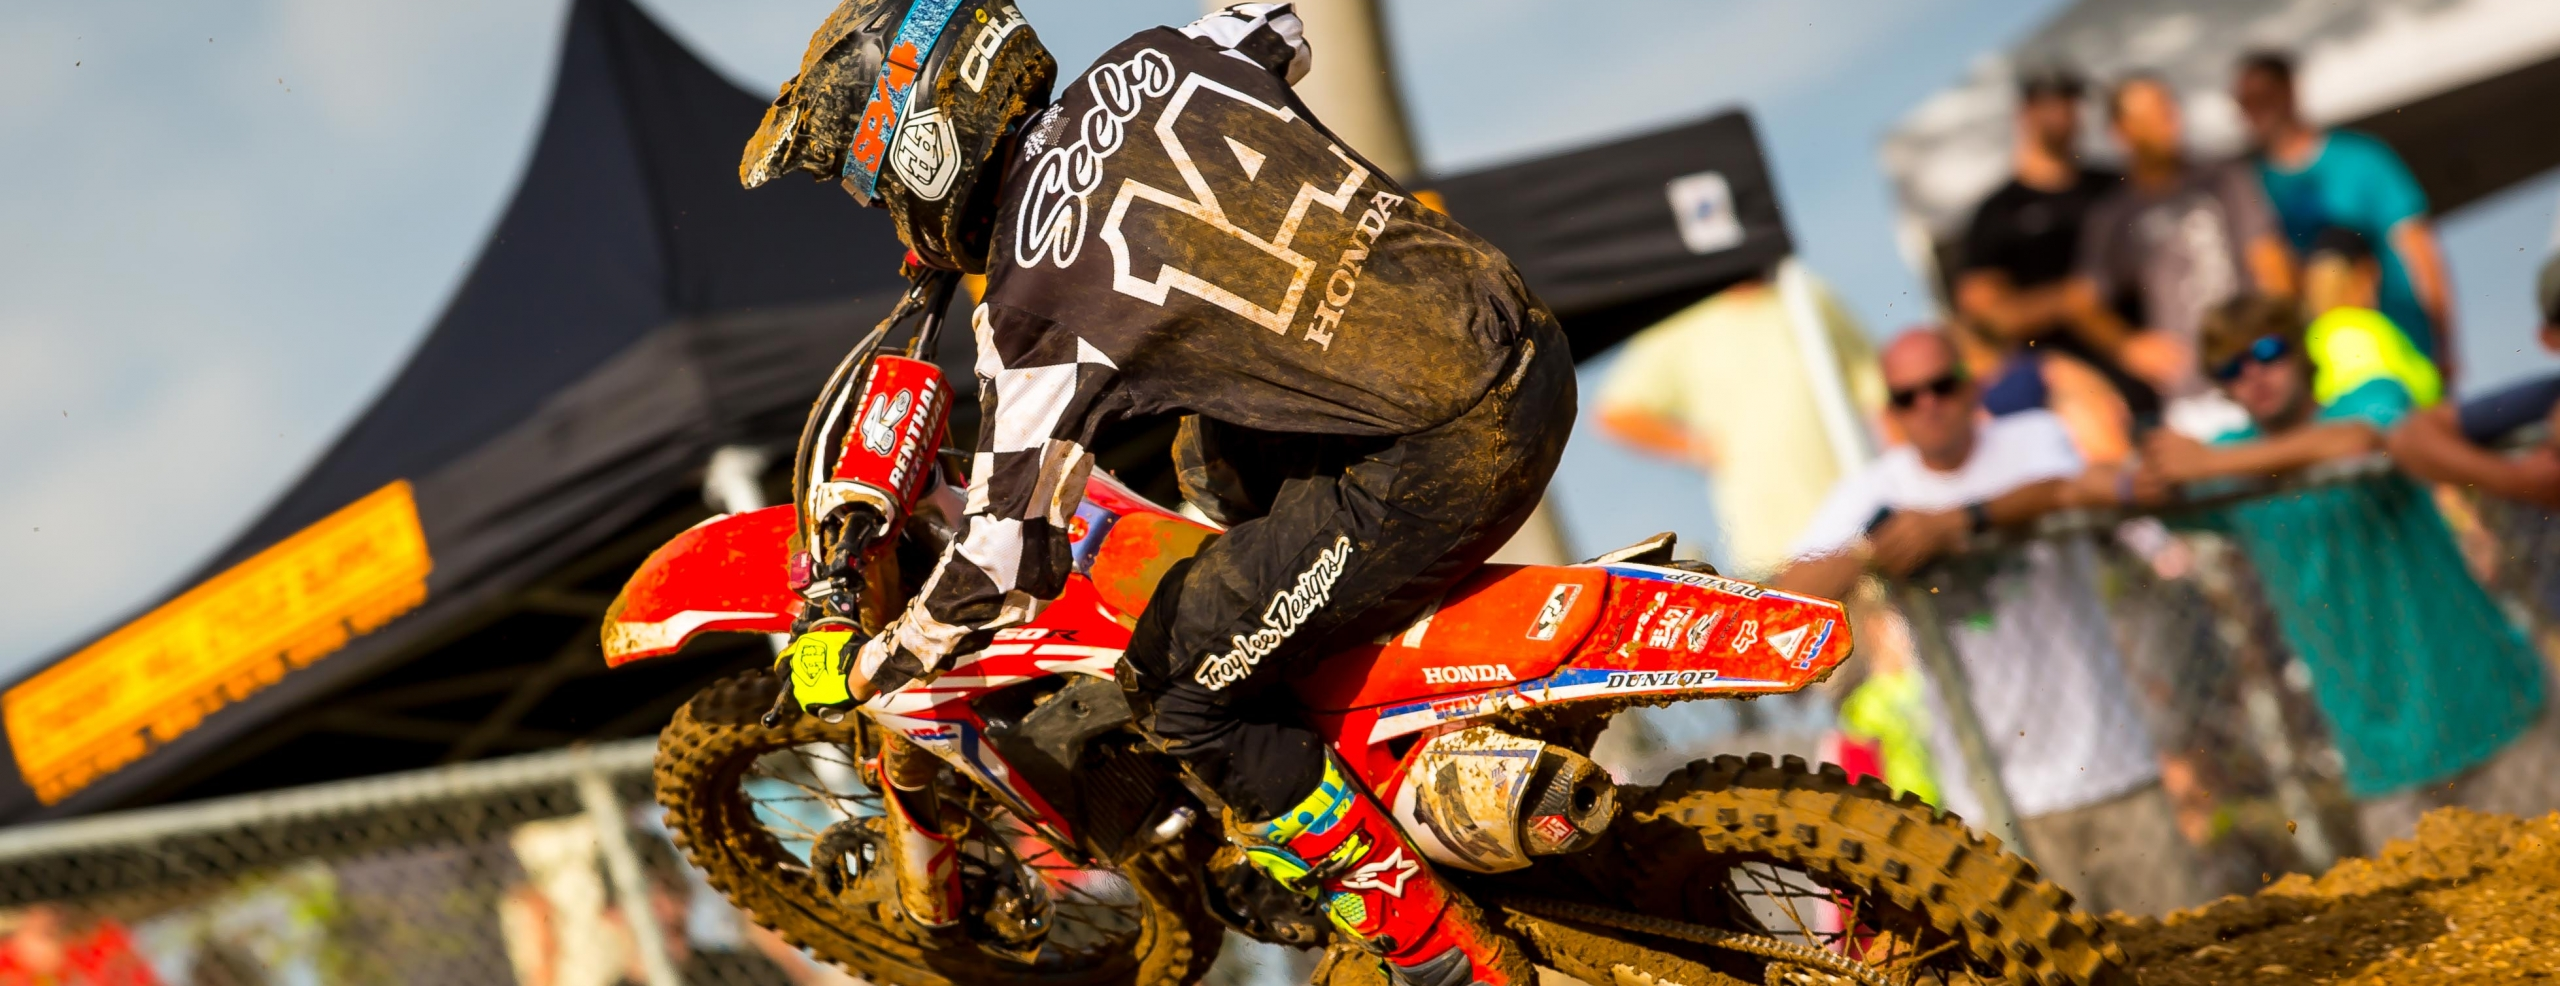 Top-Five Result for Seely at Budds Creek National, Craig